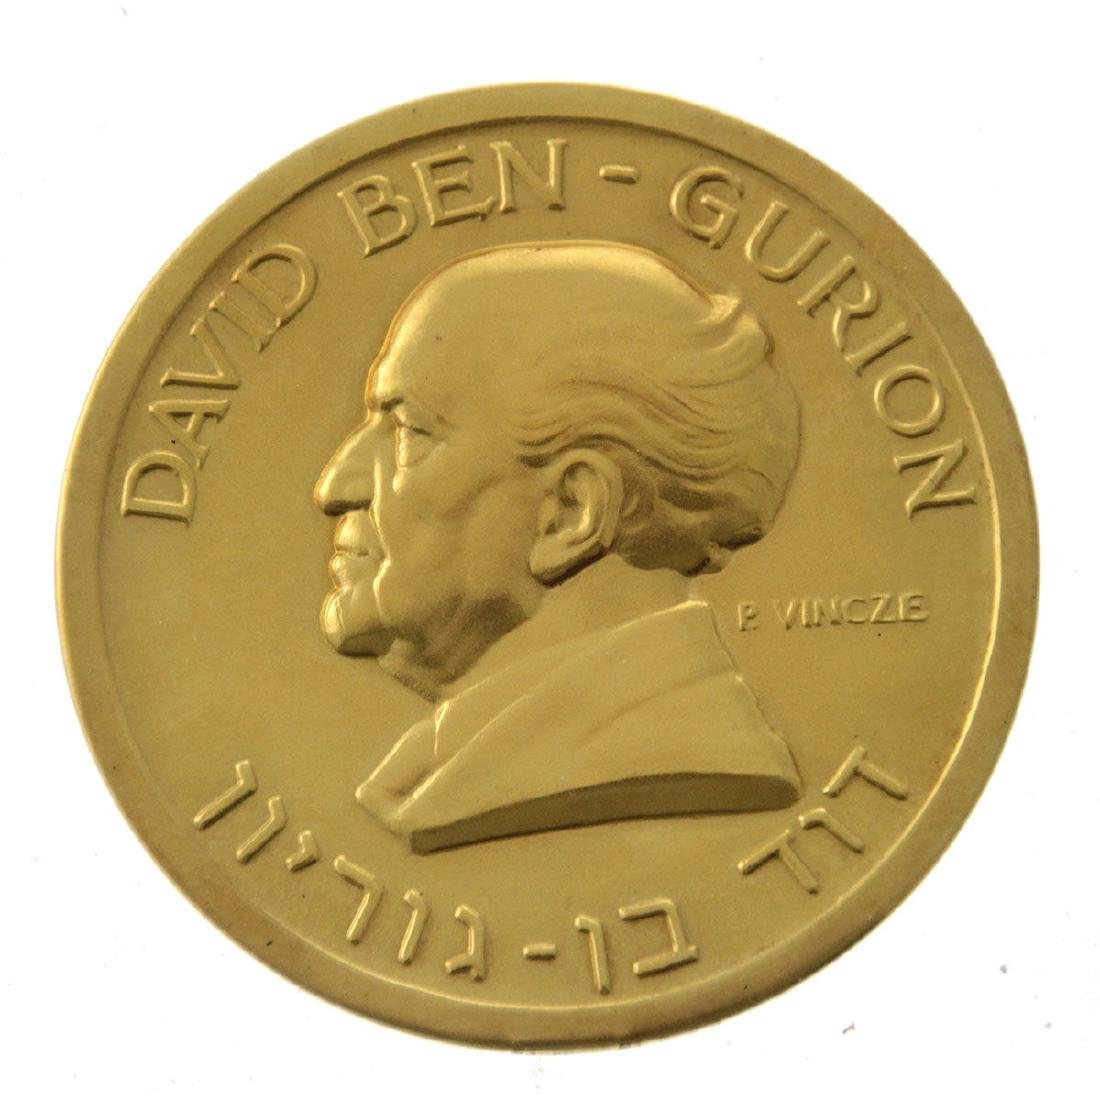 David Ben Gurion 24k Gold Medal.